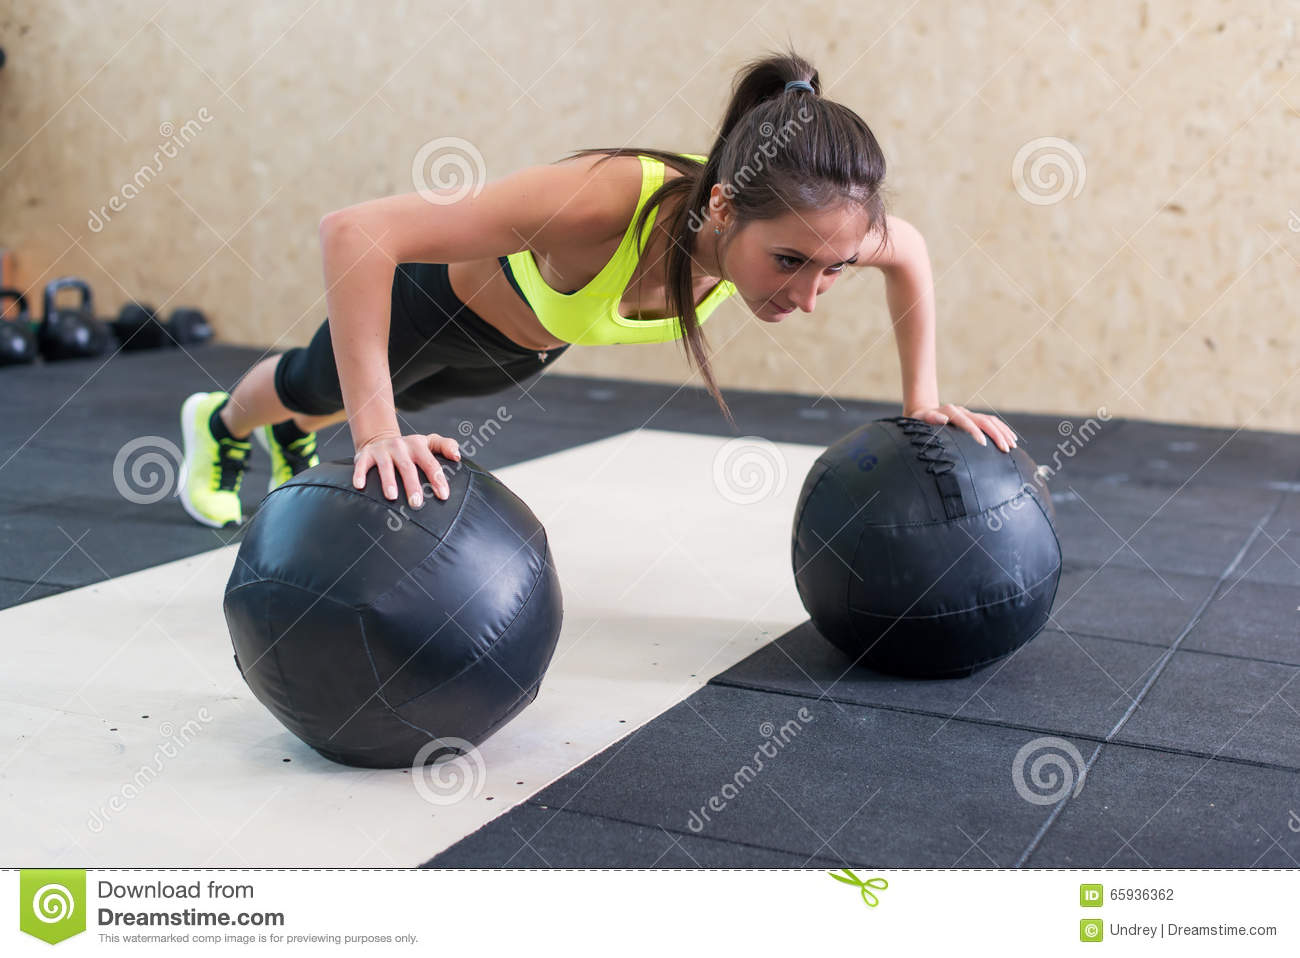 Young fit woman doing push up on medicine ball at gym.